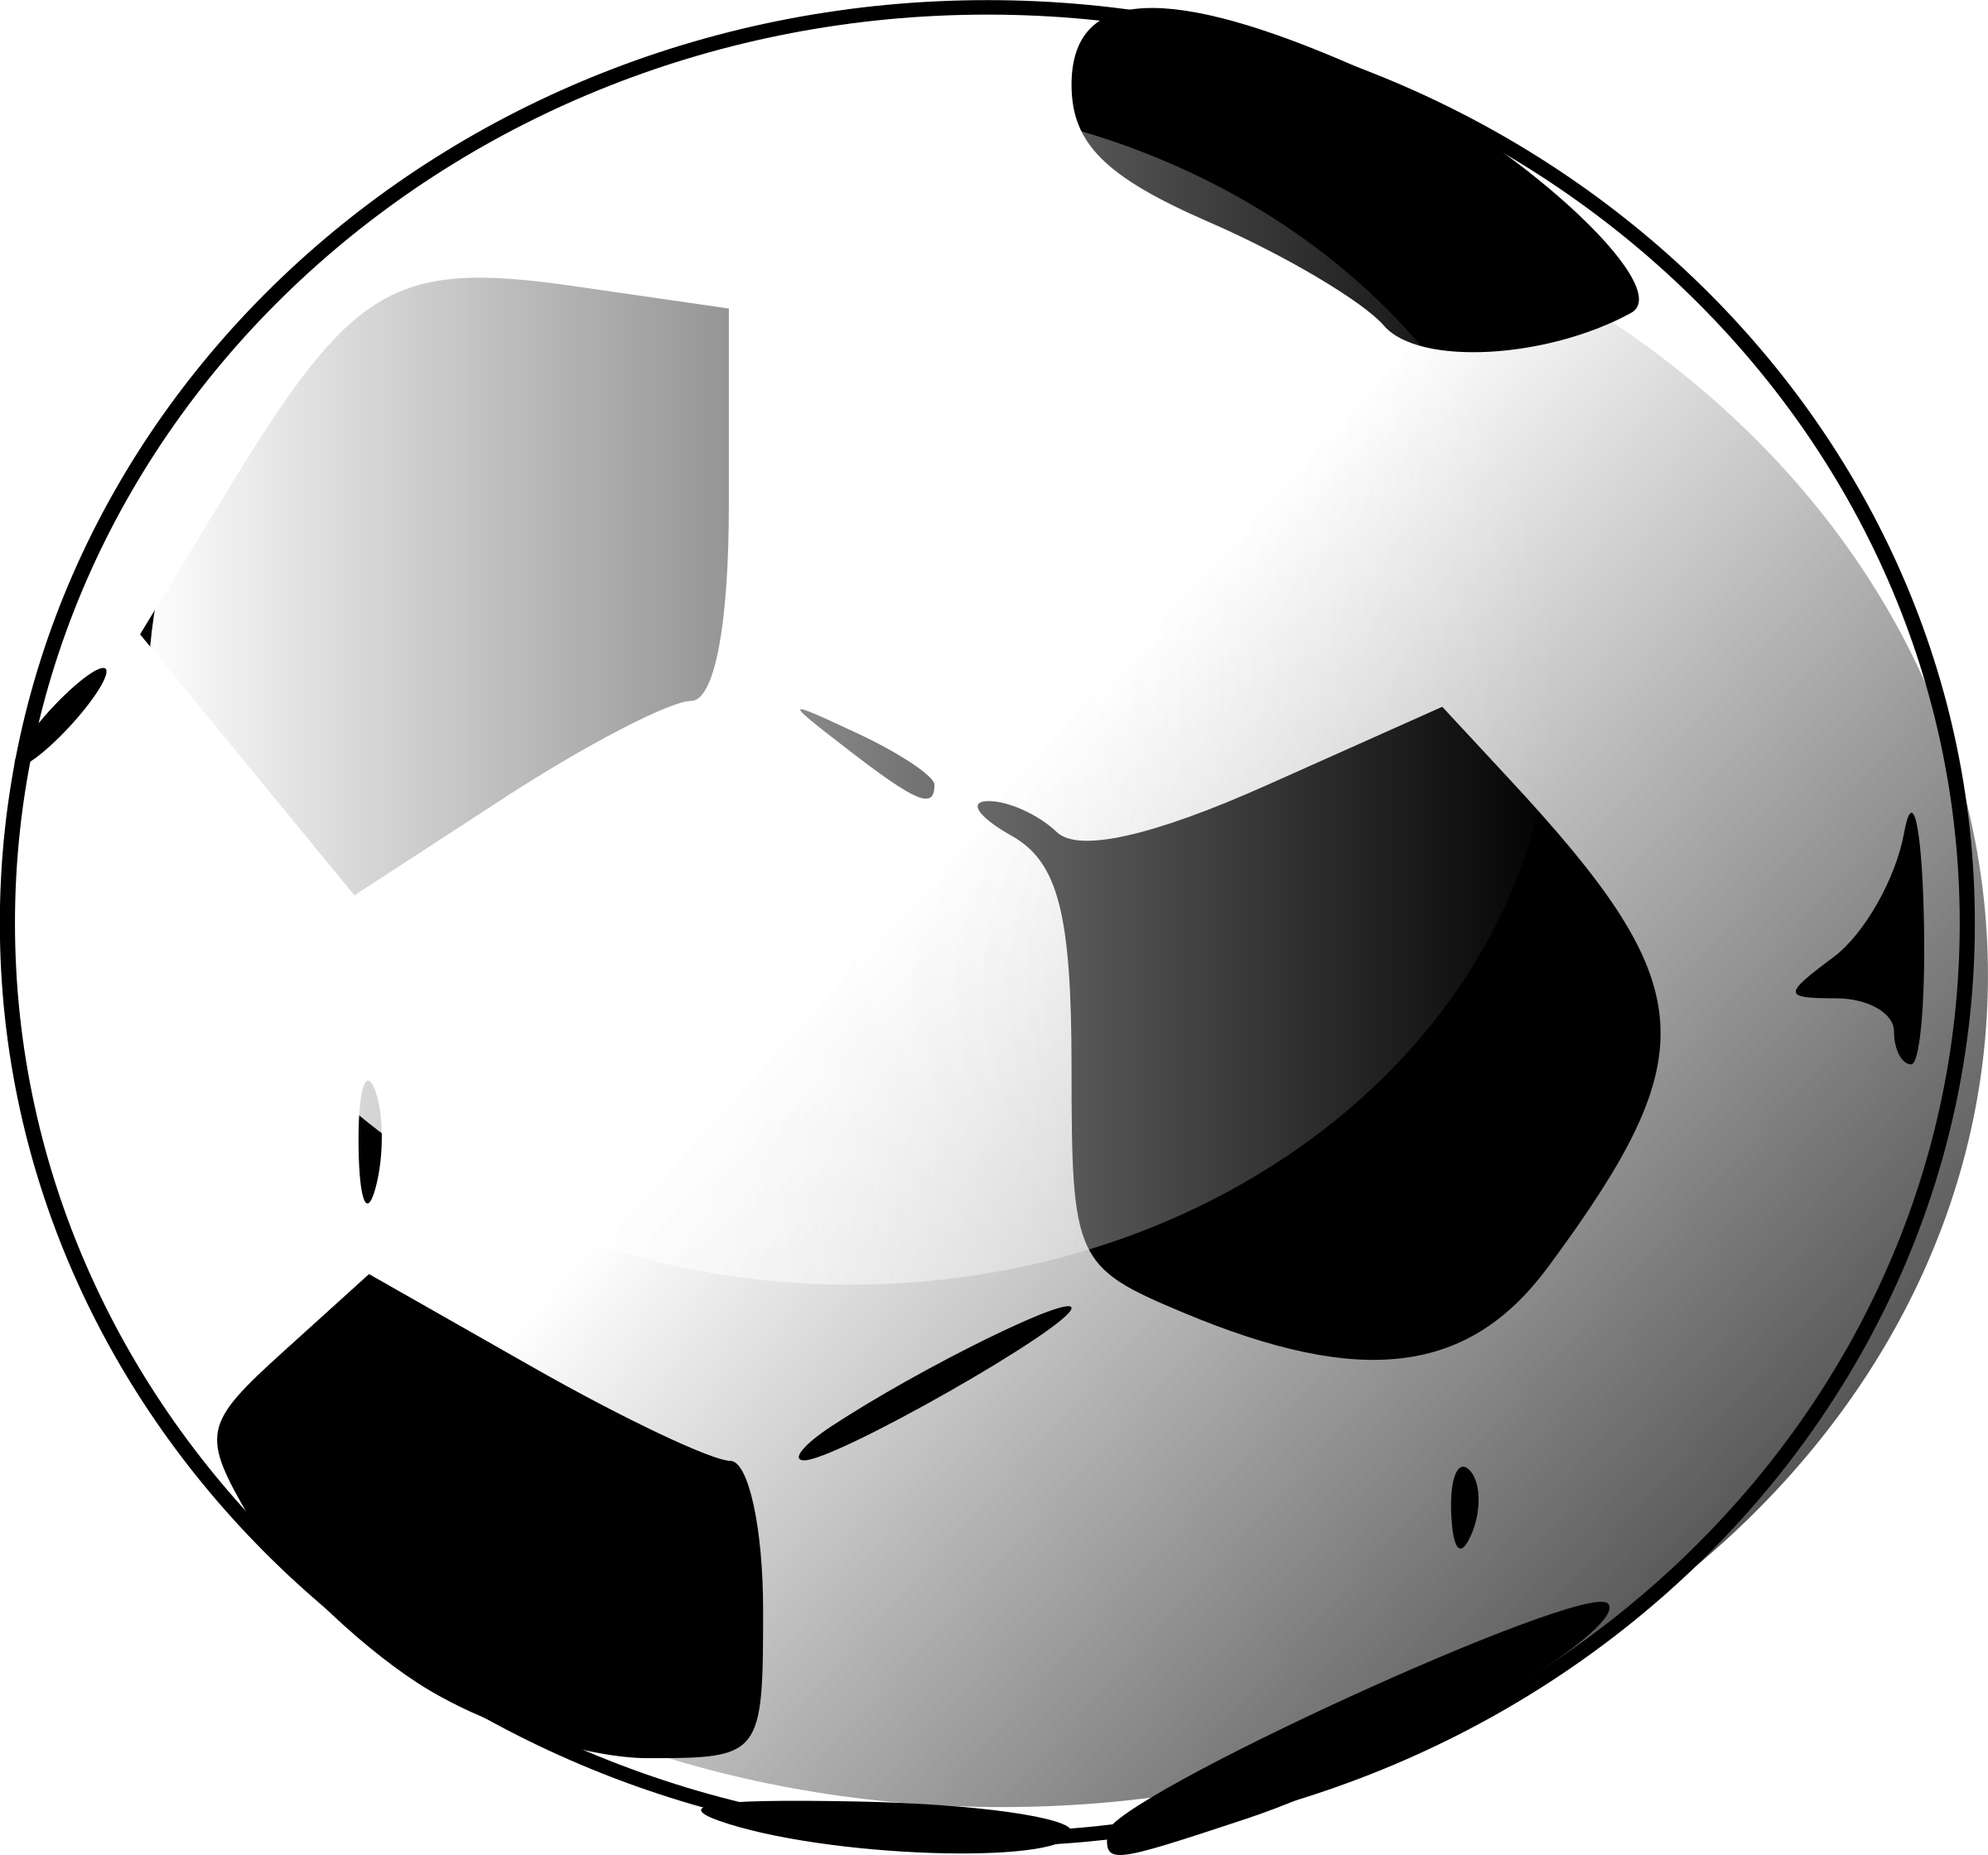 Clipart of a soccer ball png free download Clipart - soccer ball png free download